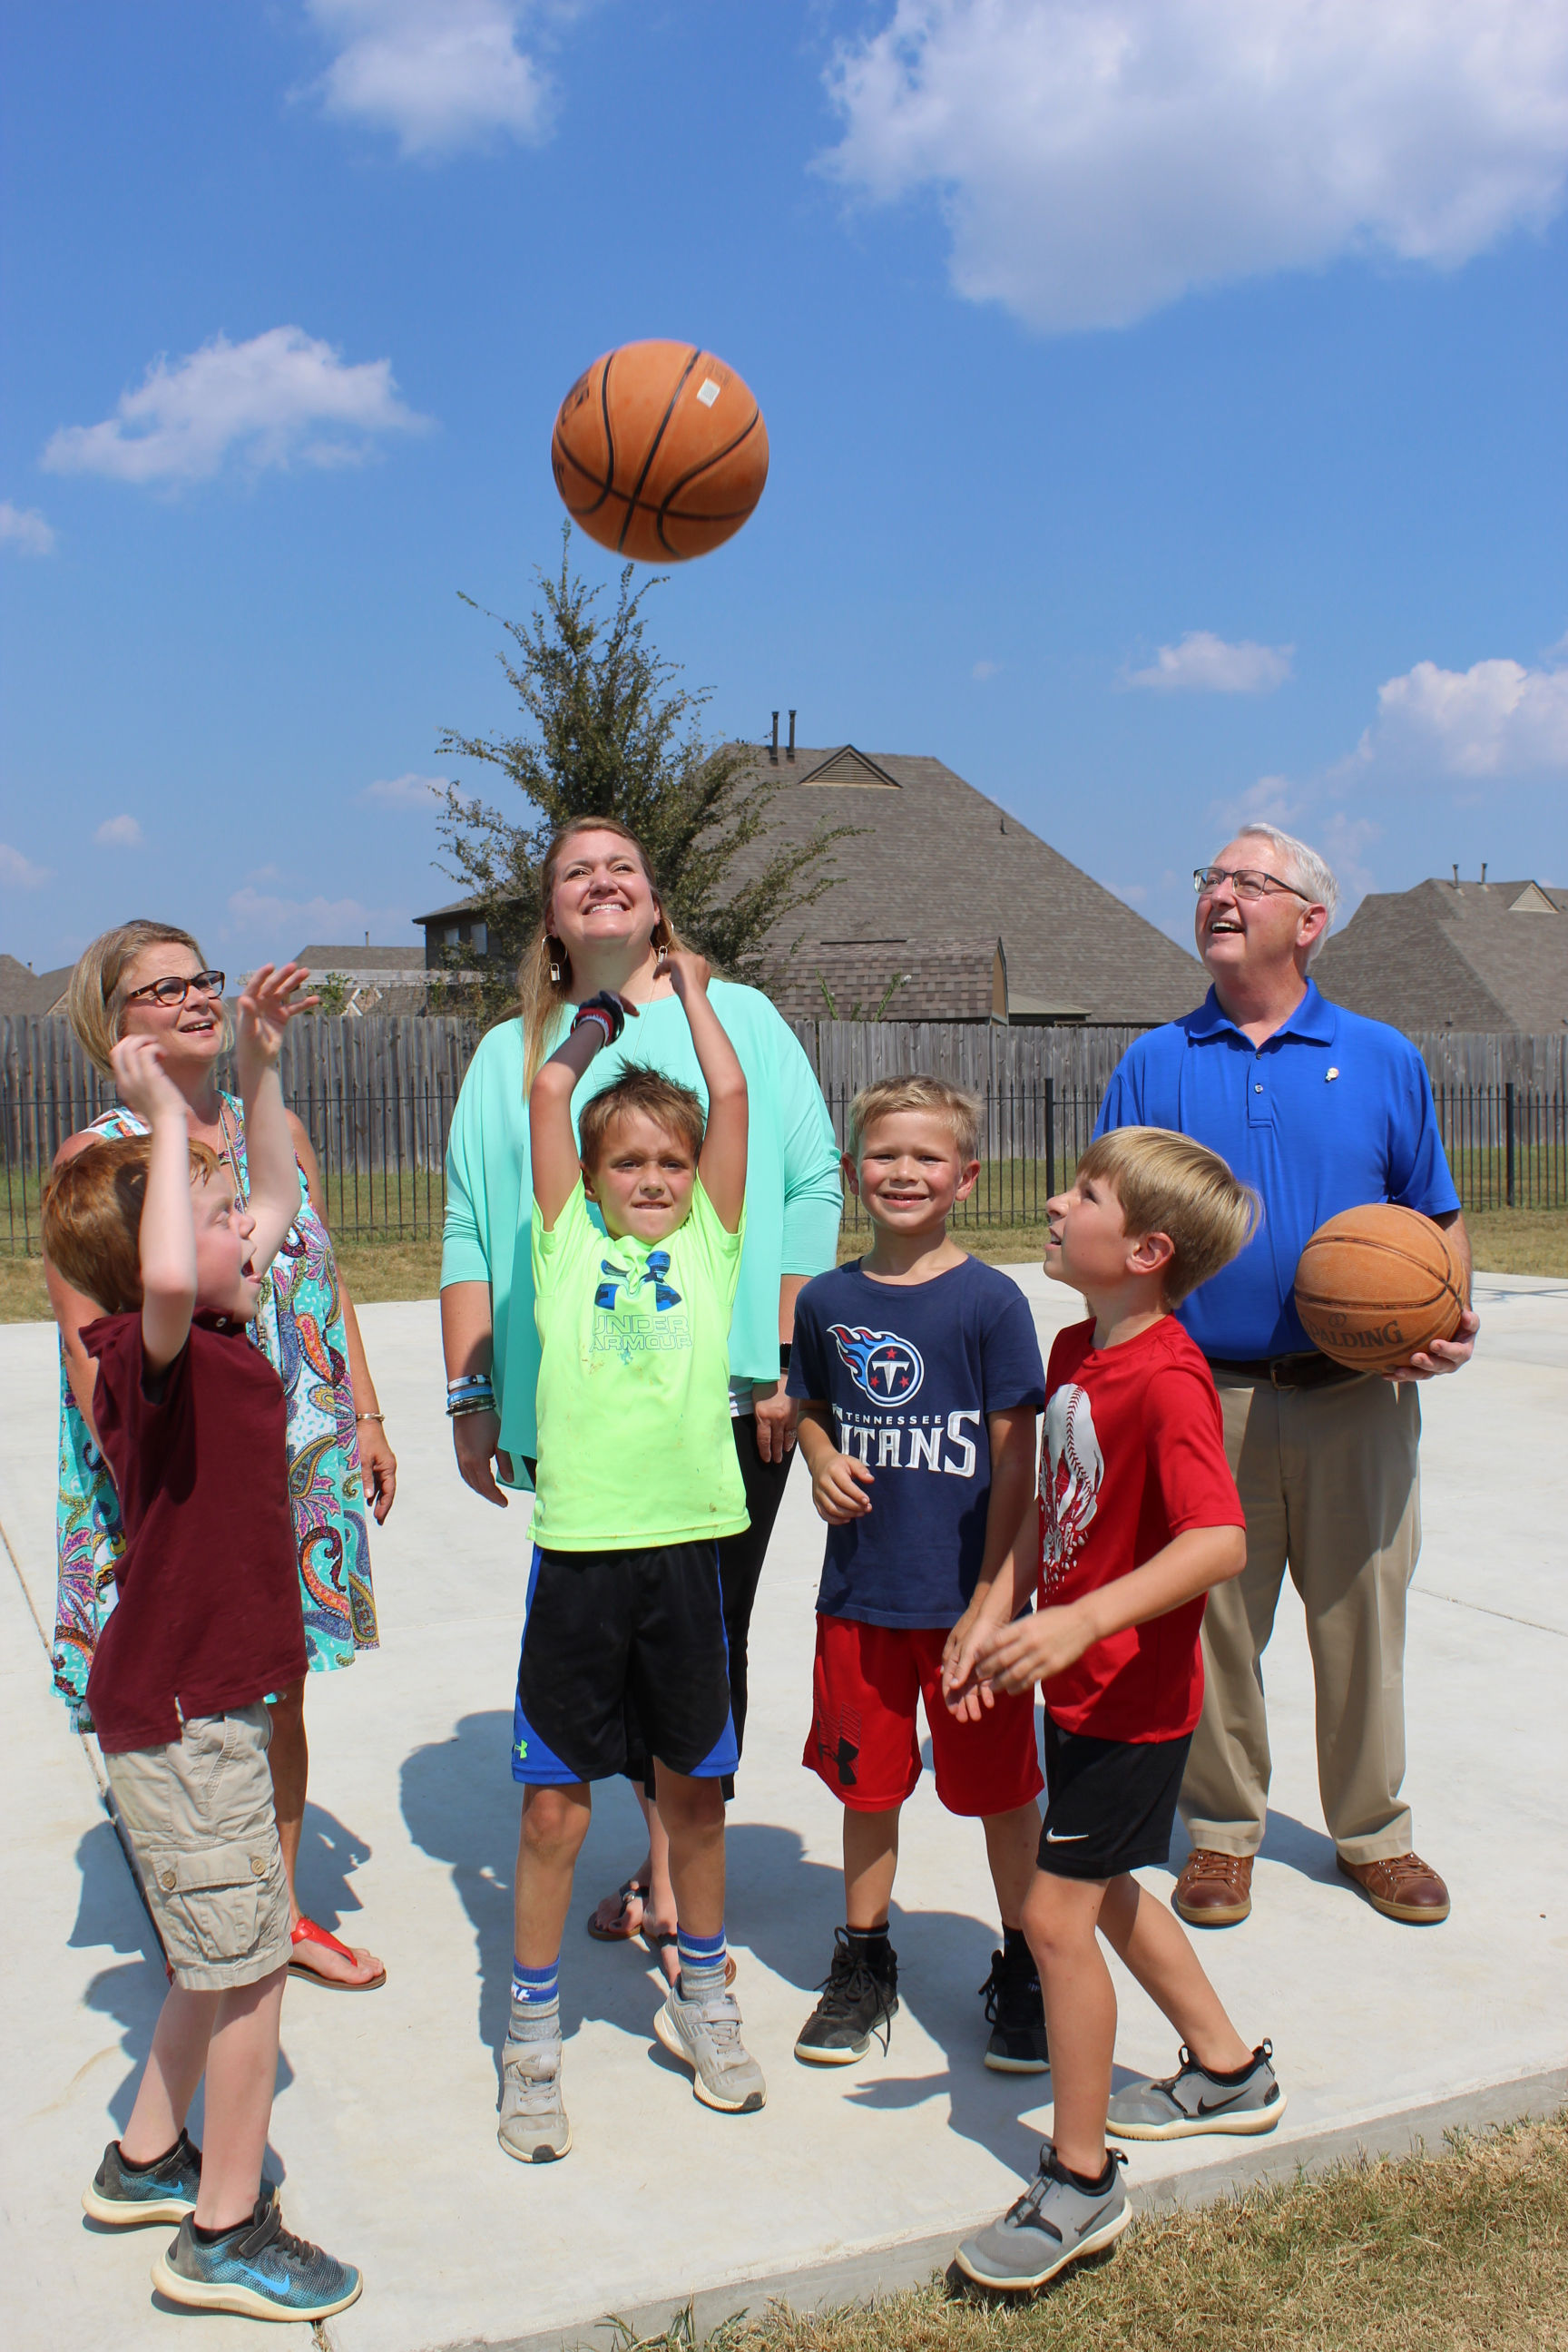 CHES Principal Leslie Heyman, Assistant Principal Kristy Hale, and Rotarian Dr. Greg Evans joined students on the new basketball court.